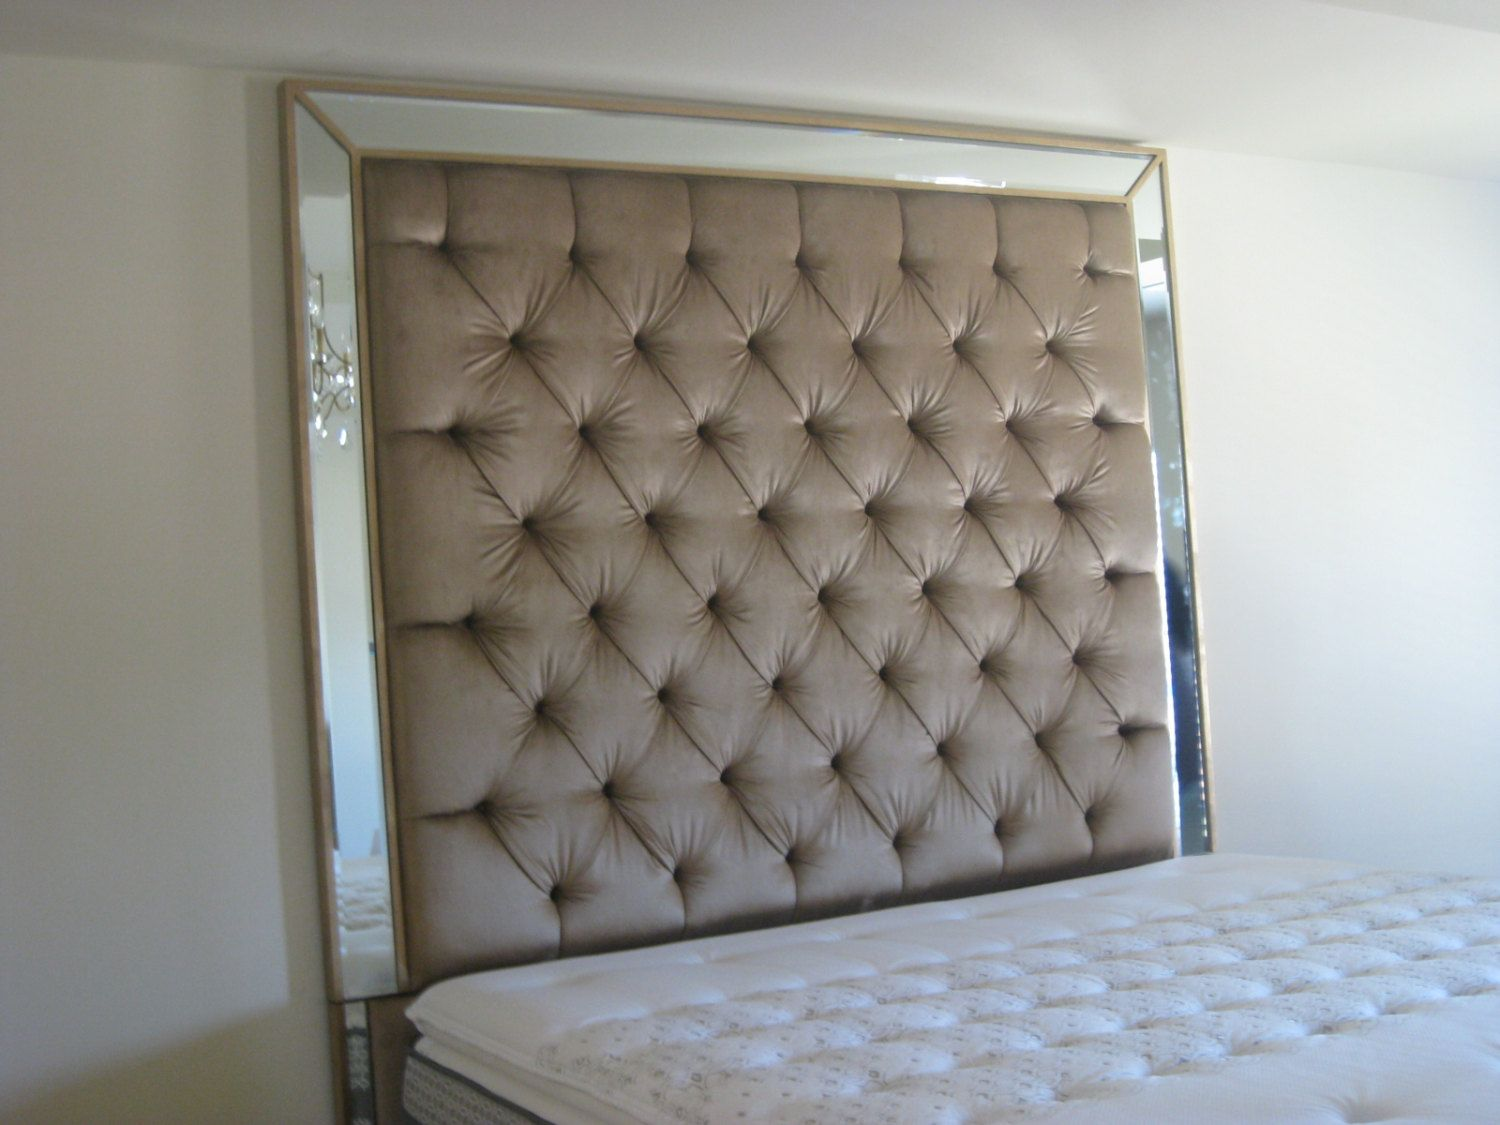 Tufted headboard with mirror trim popular items for tufted